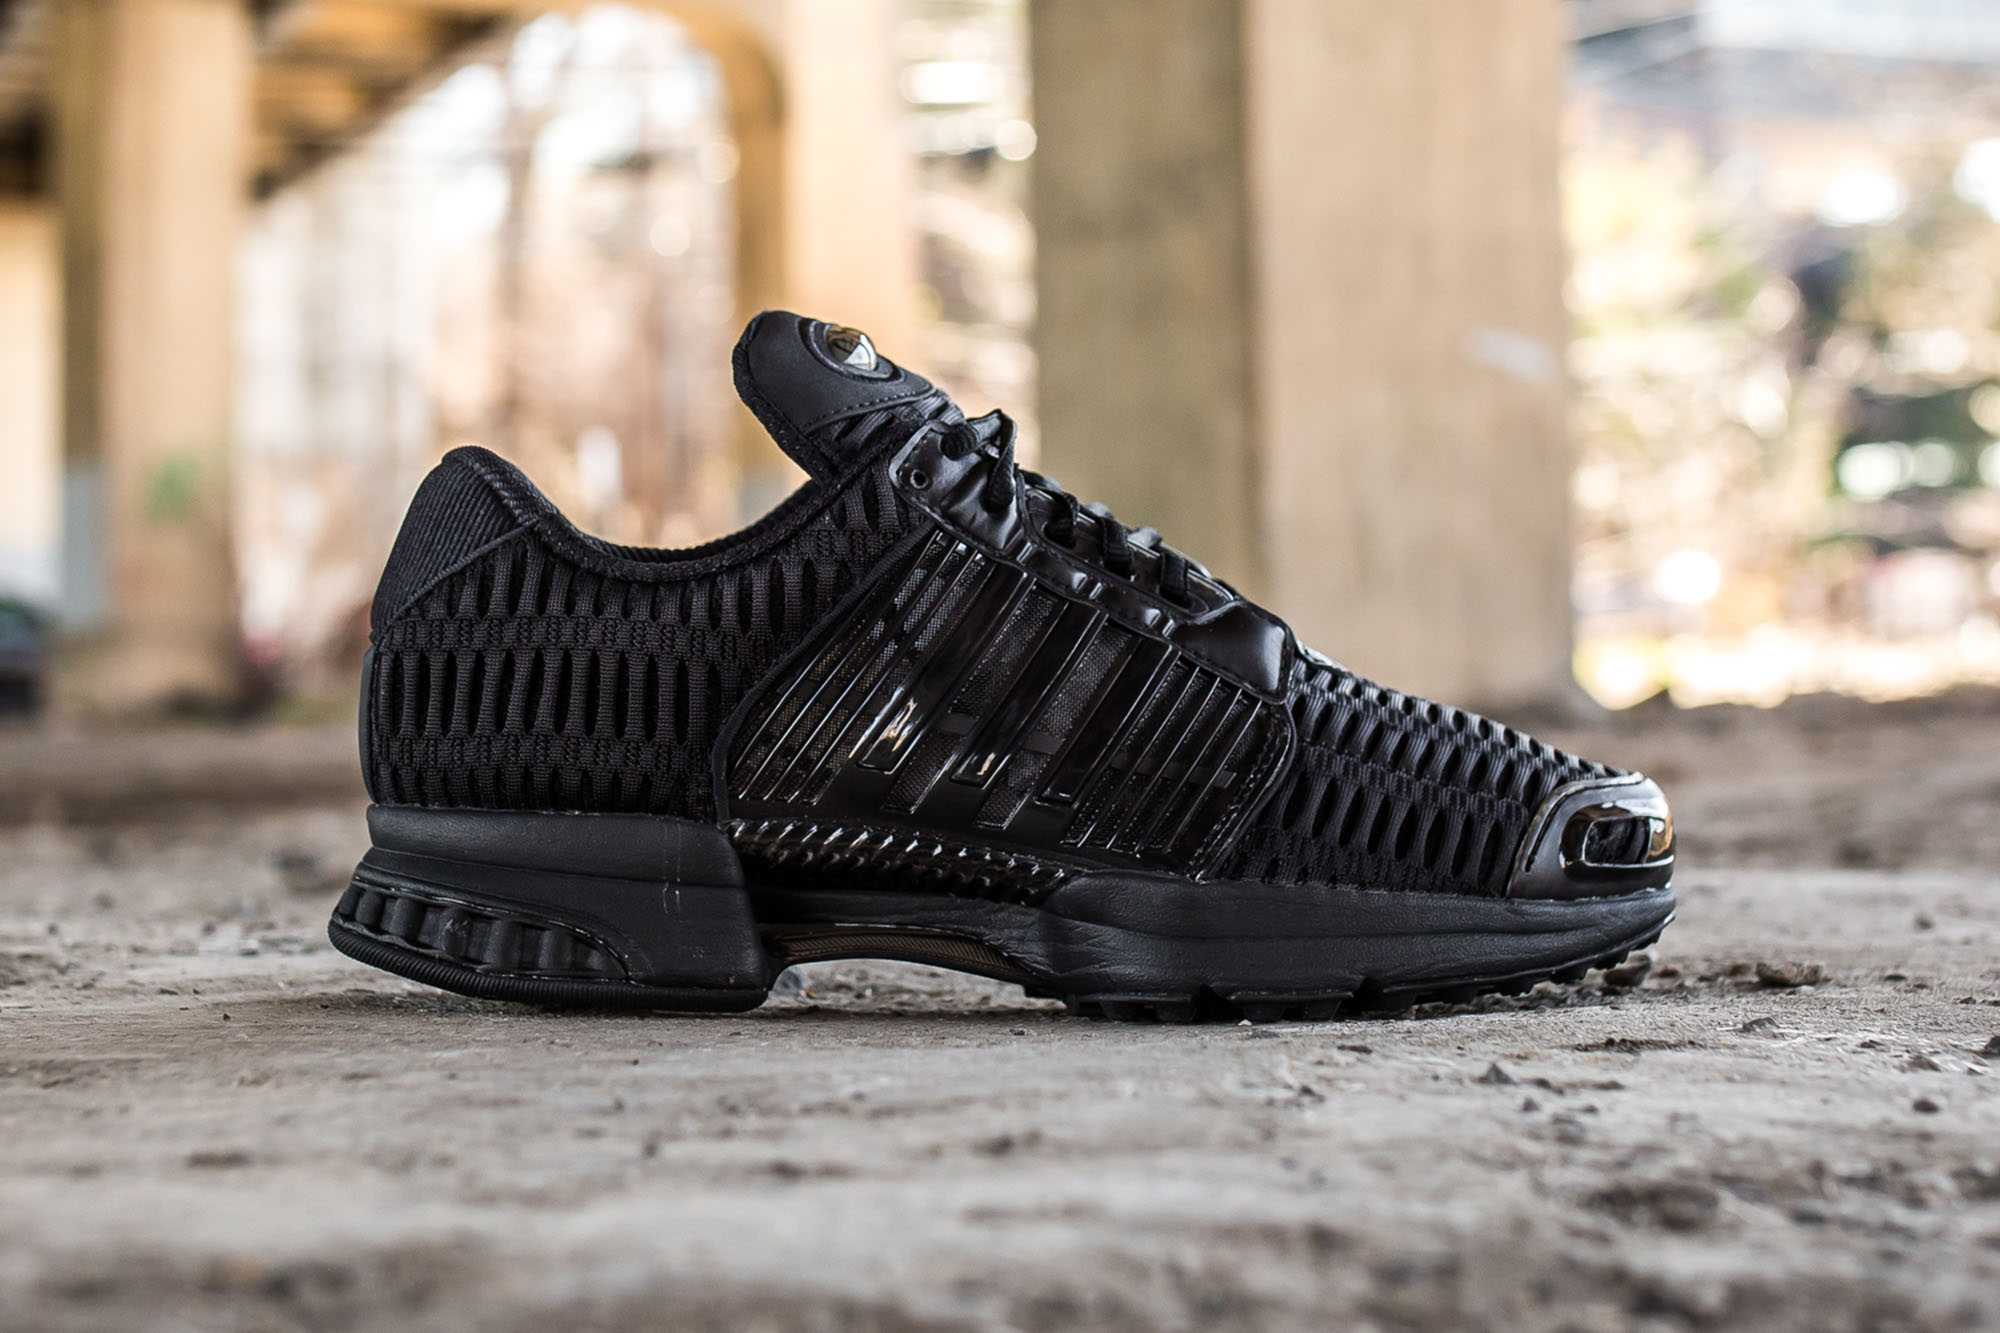 Preservativo Alpinista sorpresa  Take a Good Look at the adidas Climacool 1 'Tonal Pack' - WearTesters